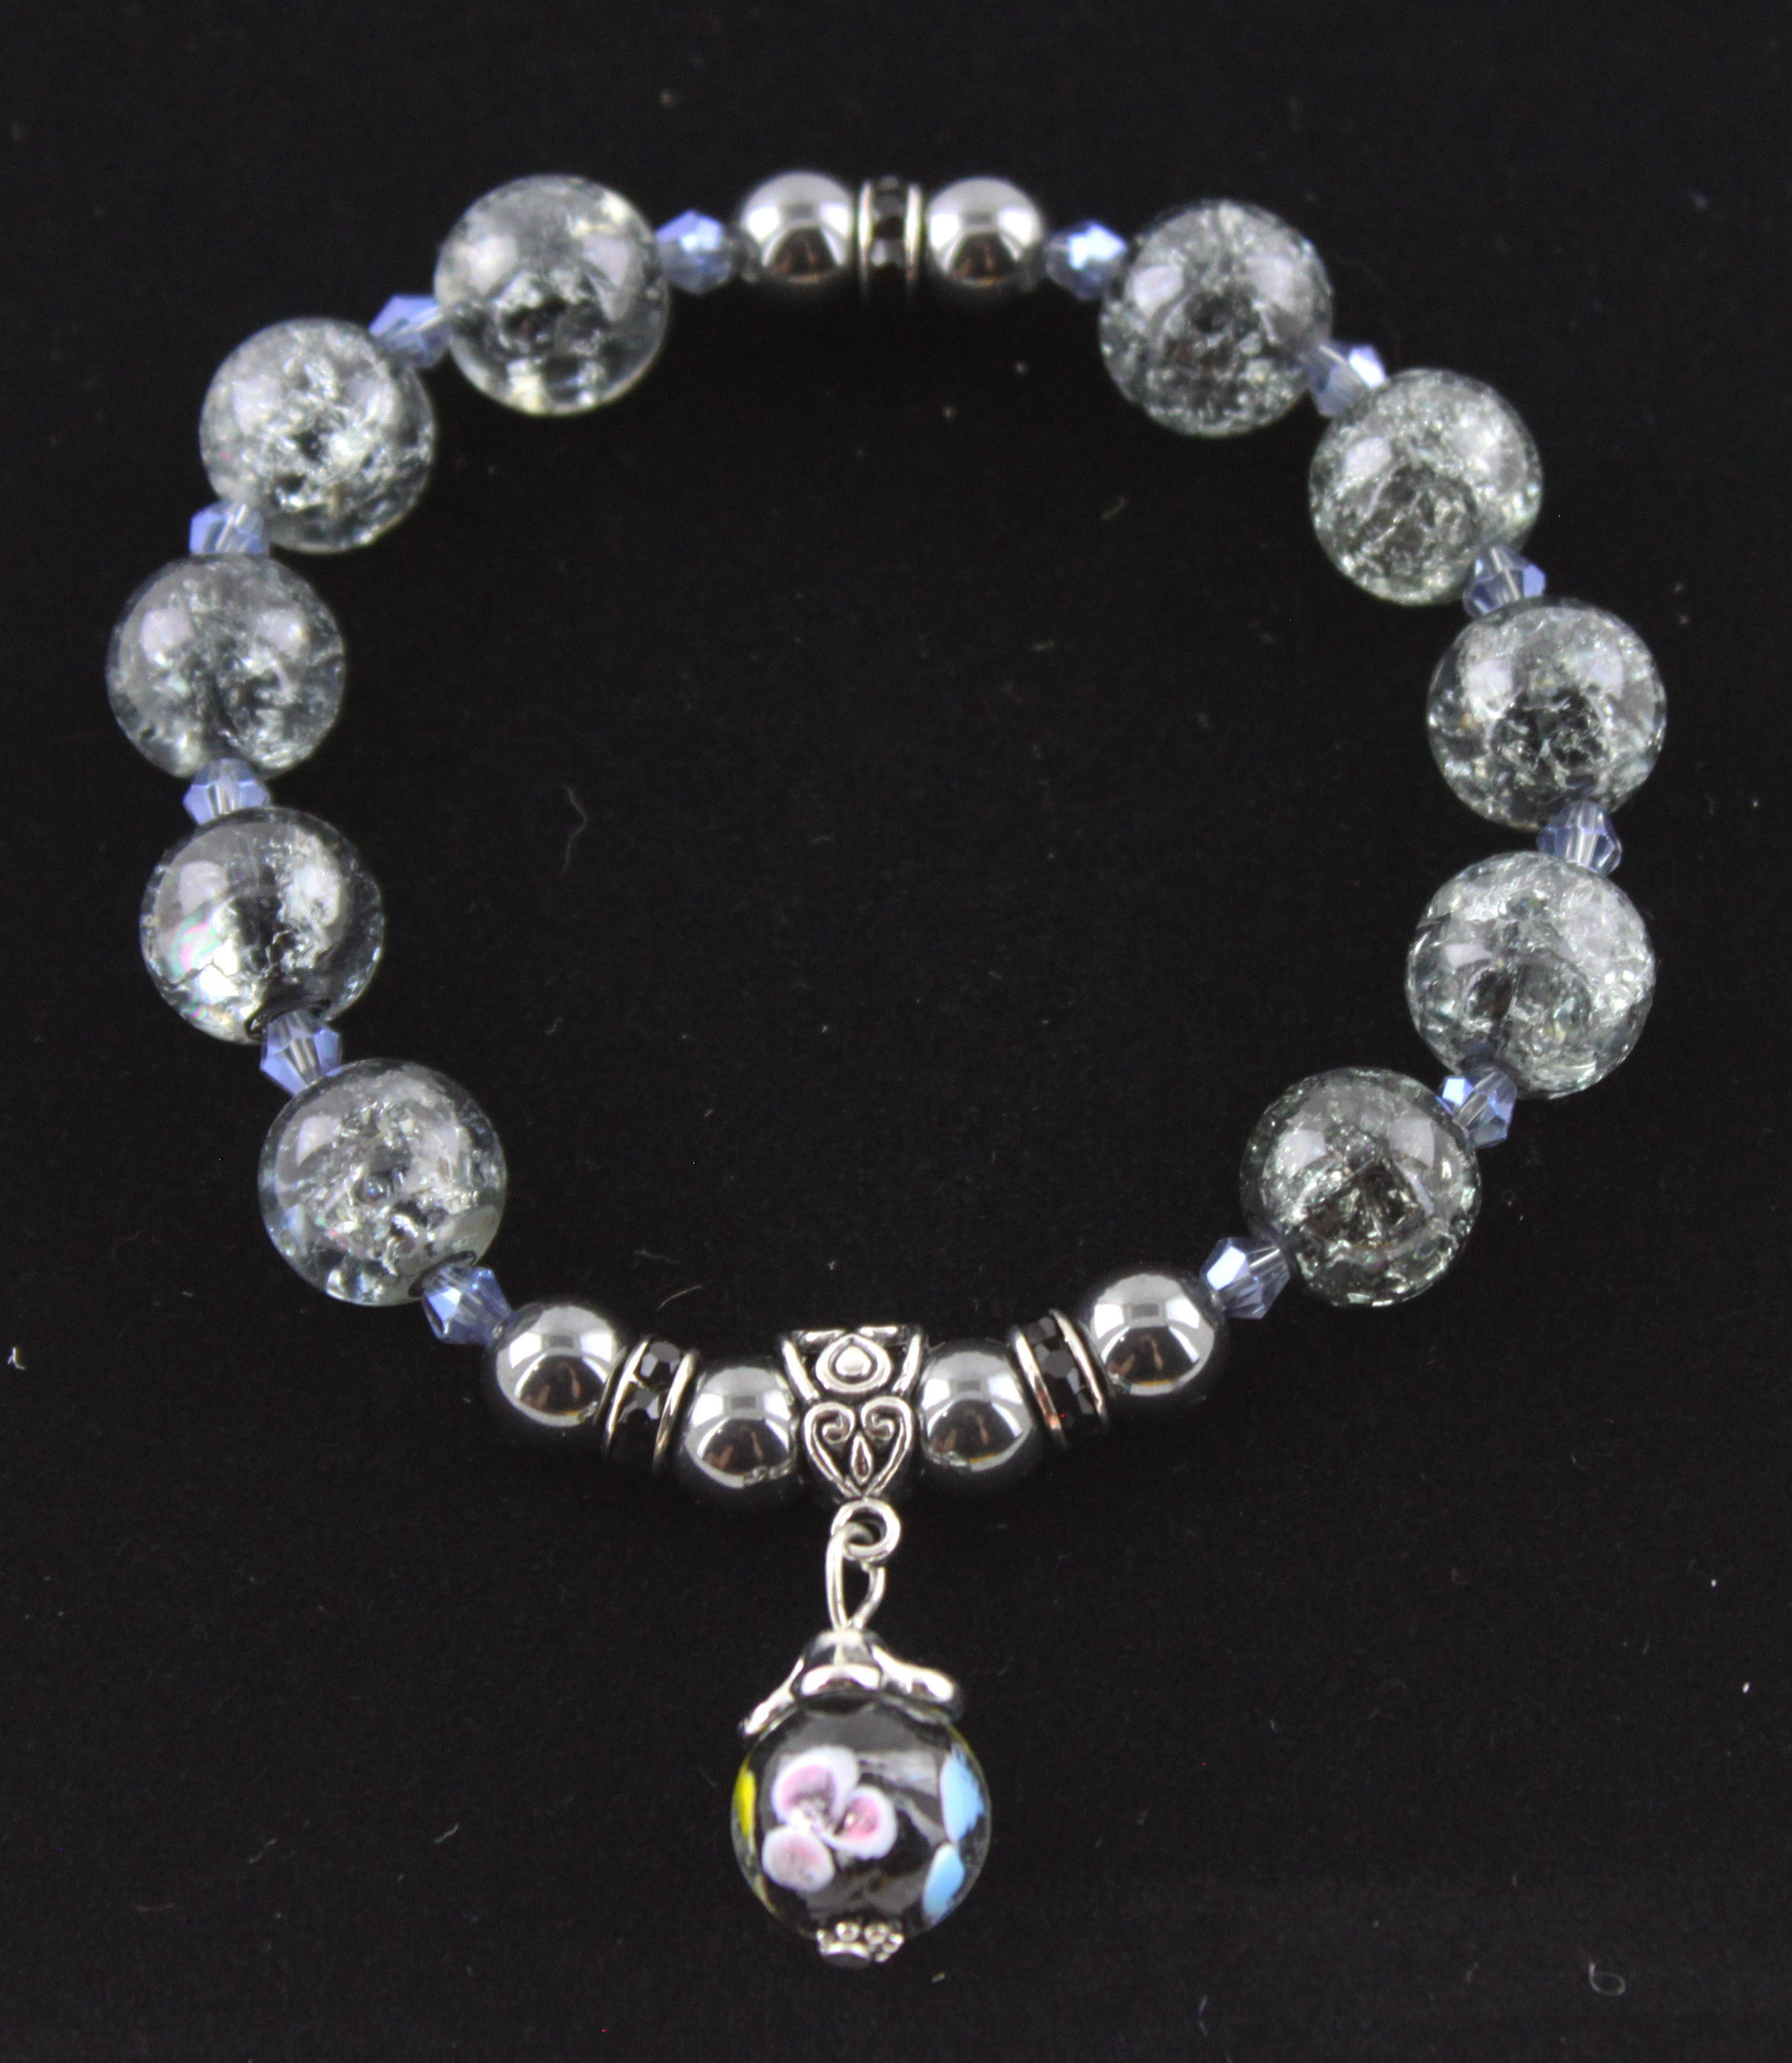 Grey Cracked Glass with a Hint of Blue Pendant Bracelet